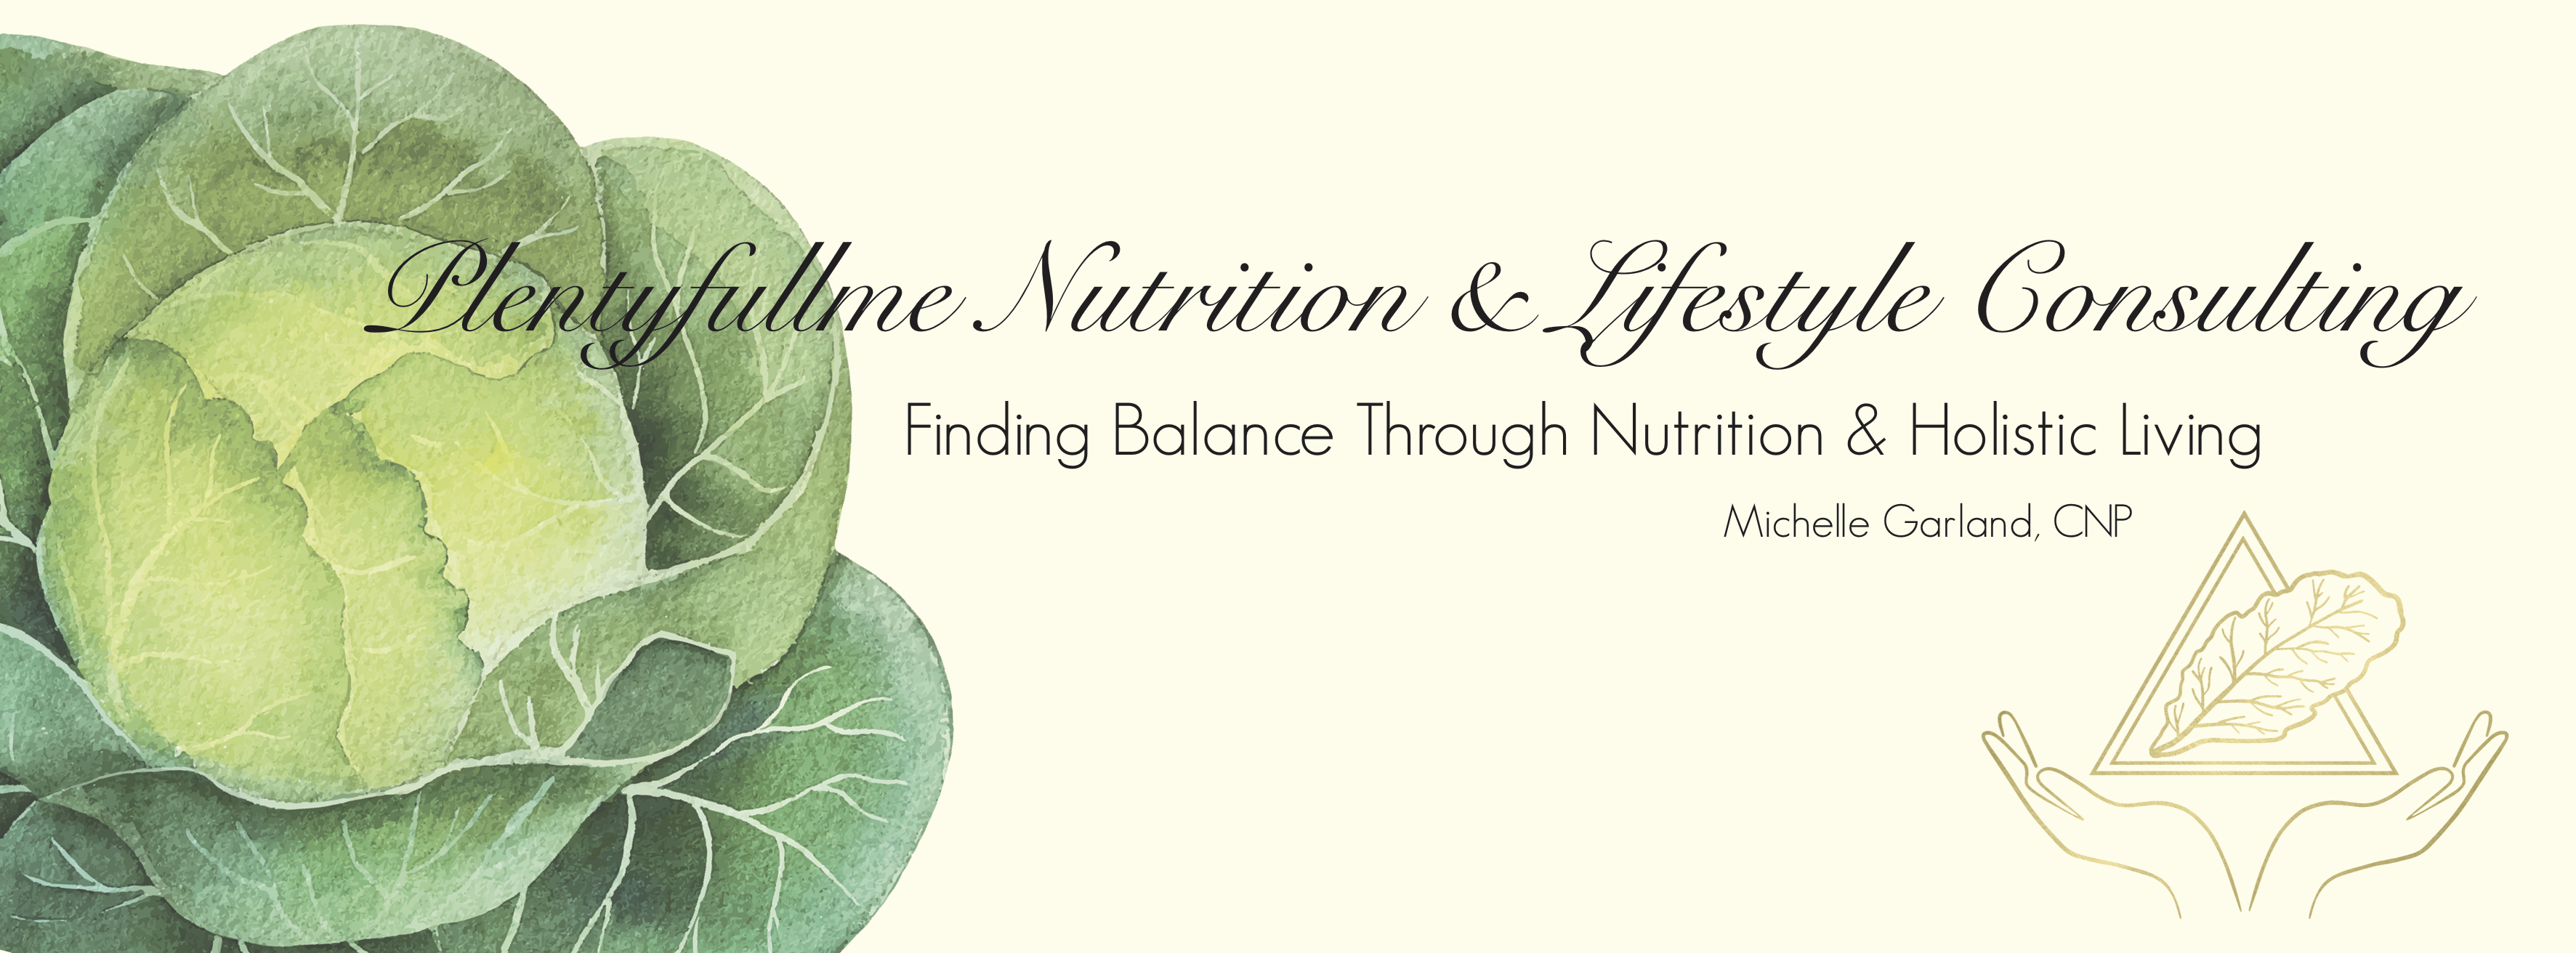 Plentyfullme Nutrition And Lifestyle Consulting